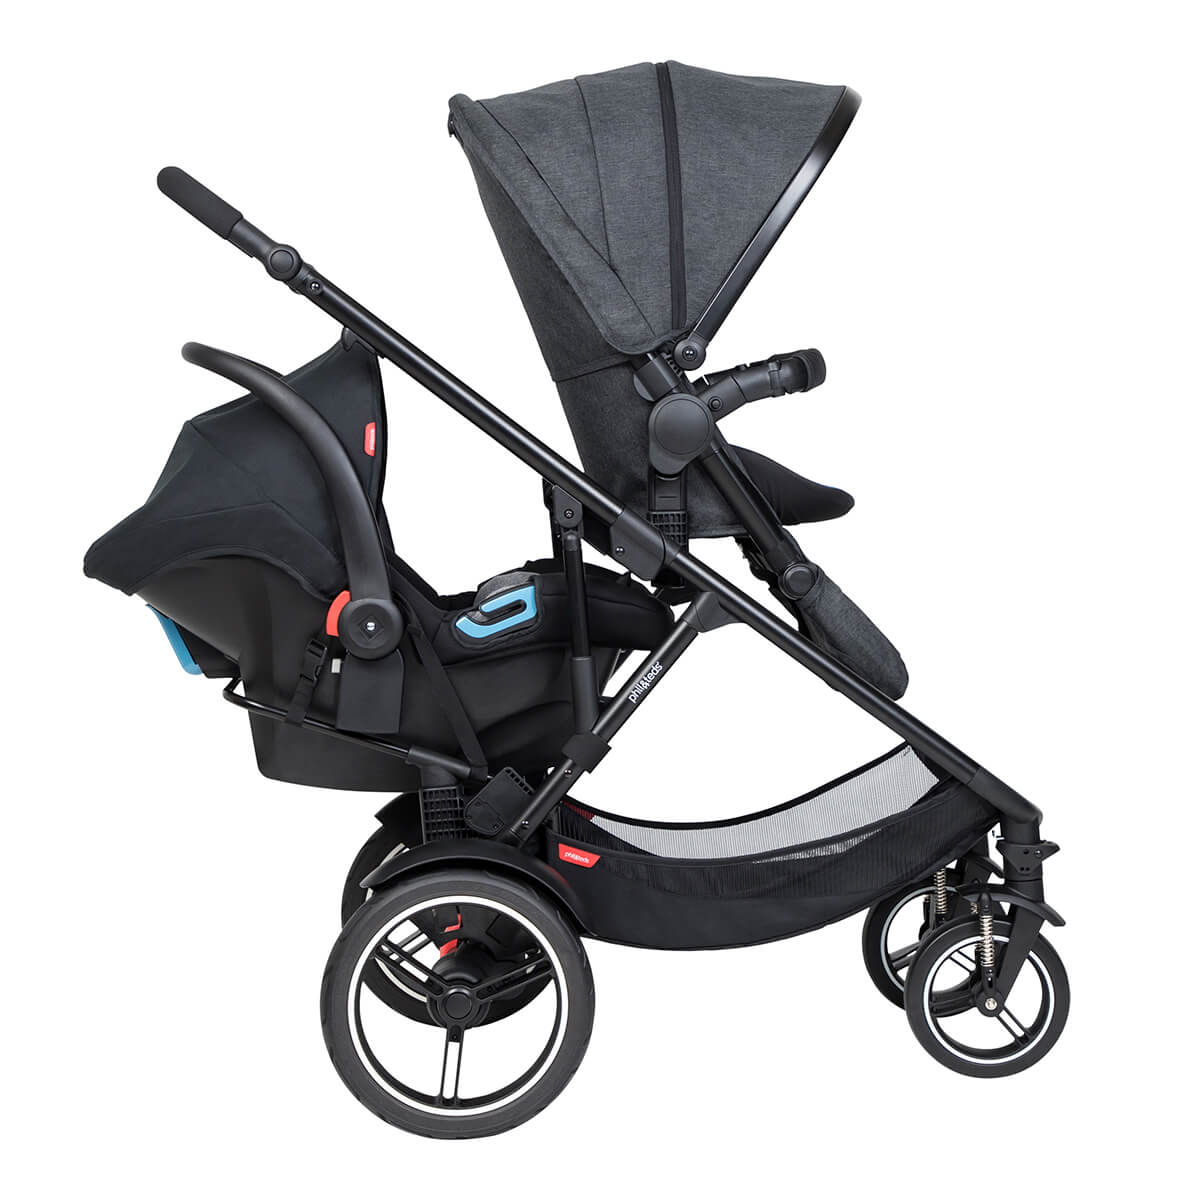 https://cdn.accentuate.io/4509912236109/19466204250306/philteds-voyager-buggy-in-forward-facing-mode-with-travel-system-in-the-rear-v1626485537936.jpg?1200x1200